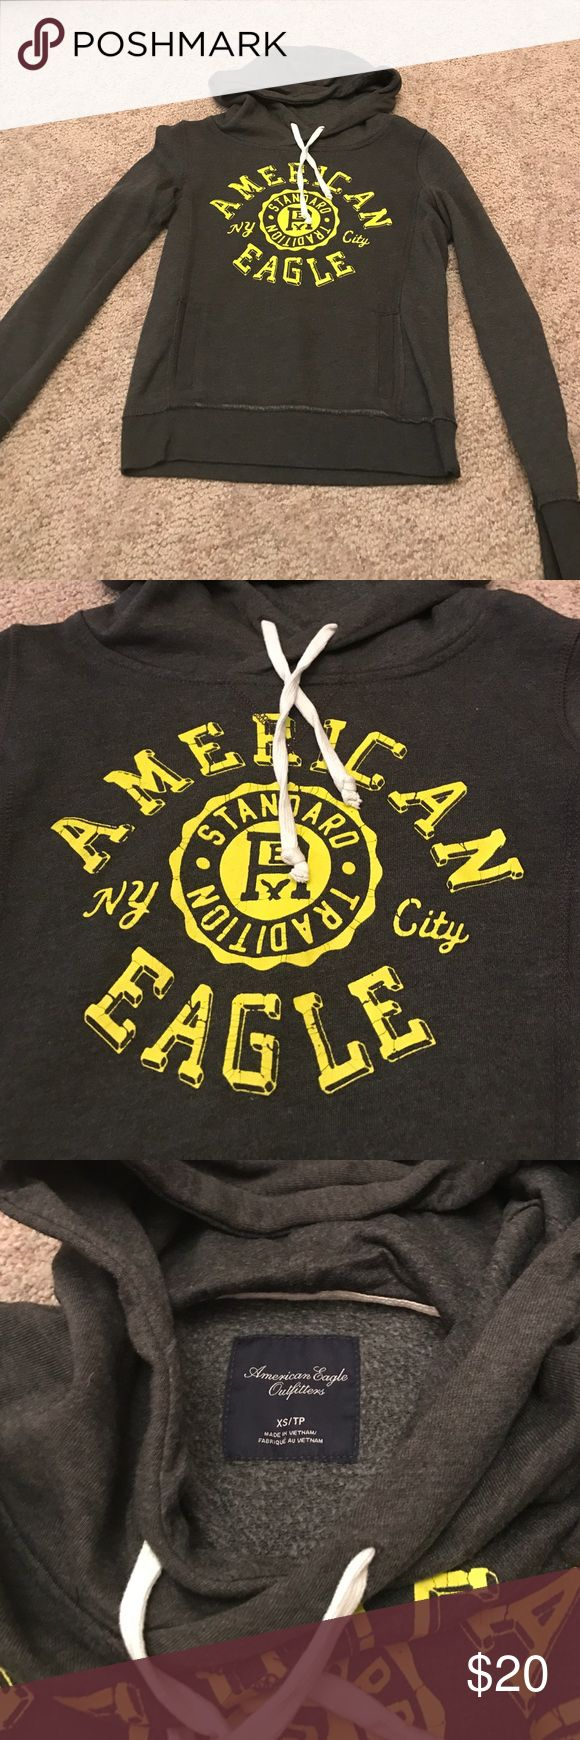 AMERICAN EAGLE HOODIE grey and yellow hoodie, worn once, GREAT condition American Eagle Outfitters Tops Sweatshirts & Hoodies